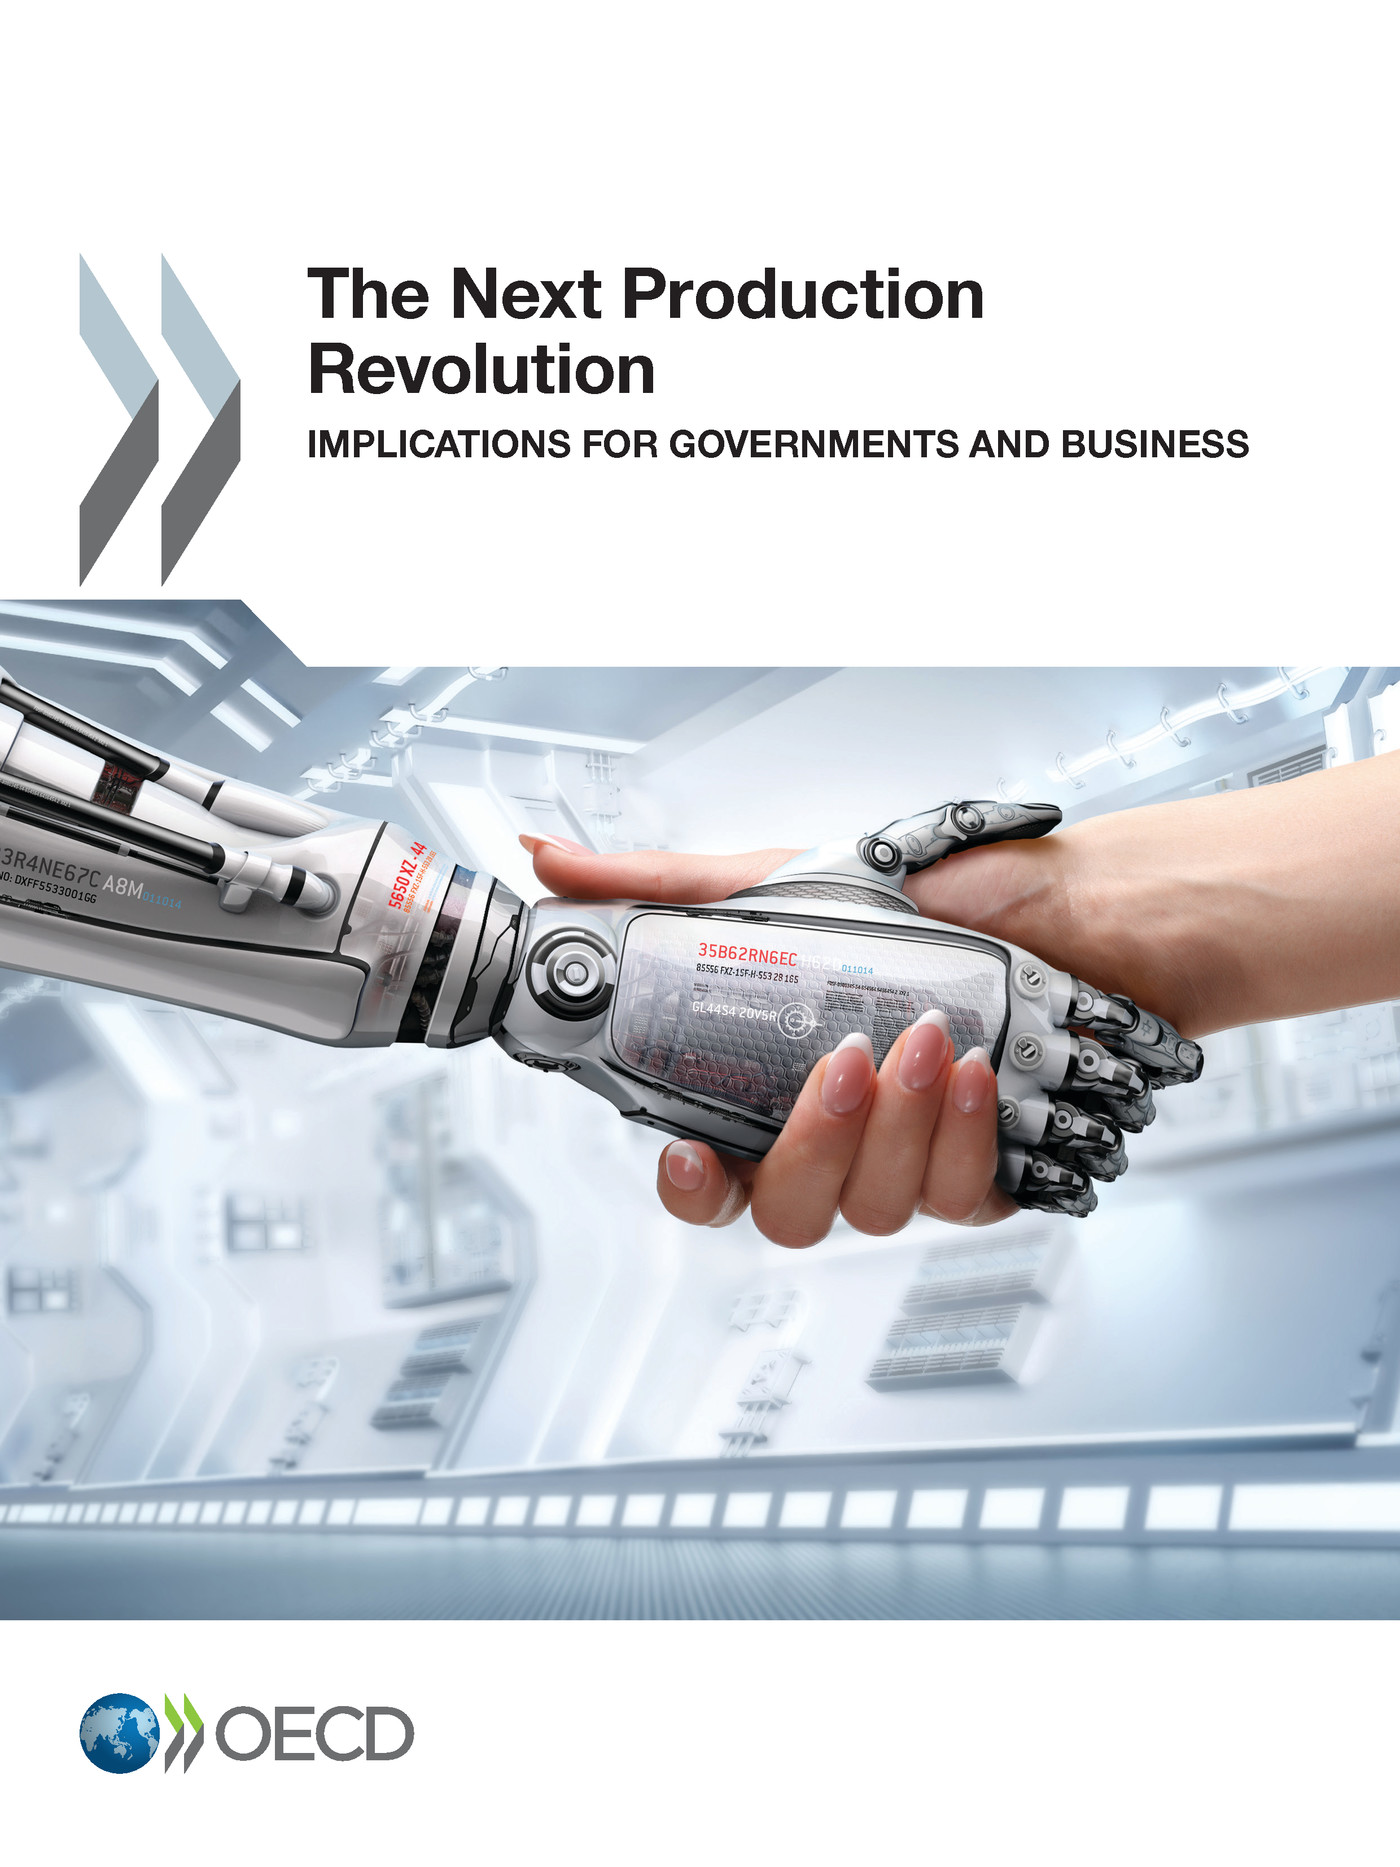 The Next Production Revolution De  Collectif - OCDE / OECD